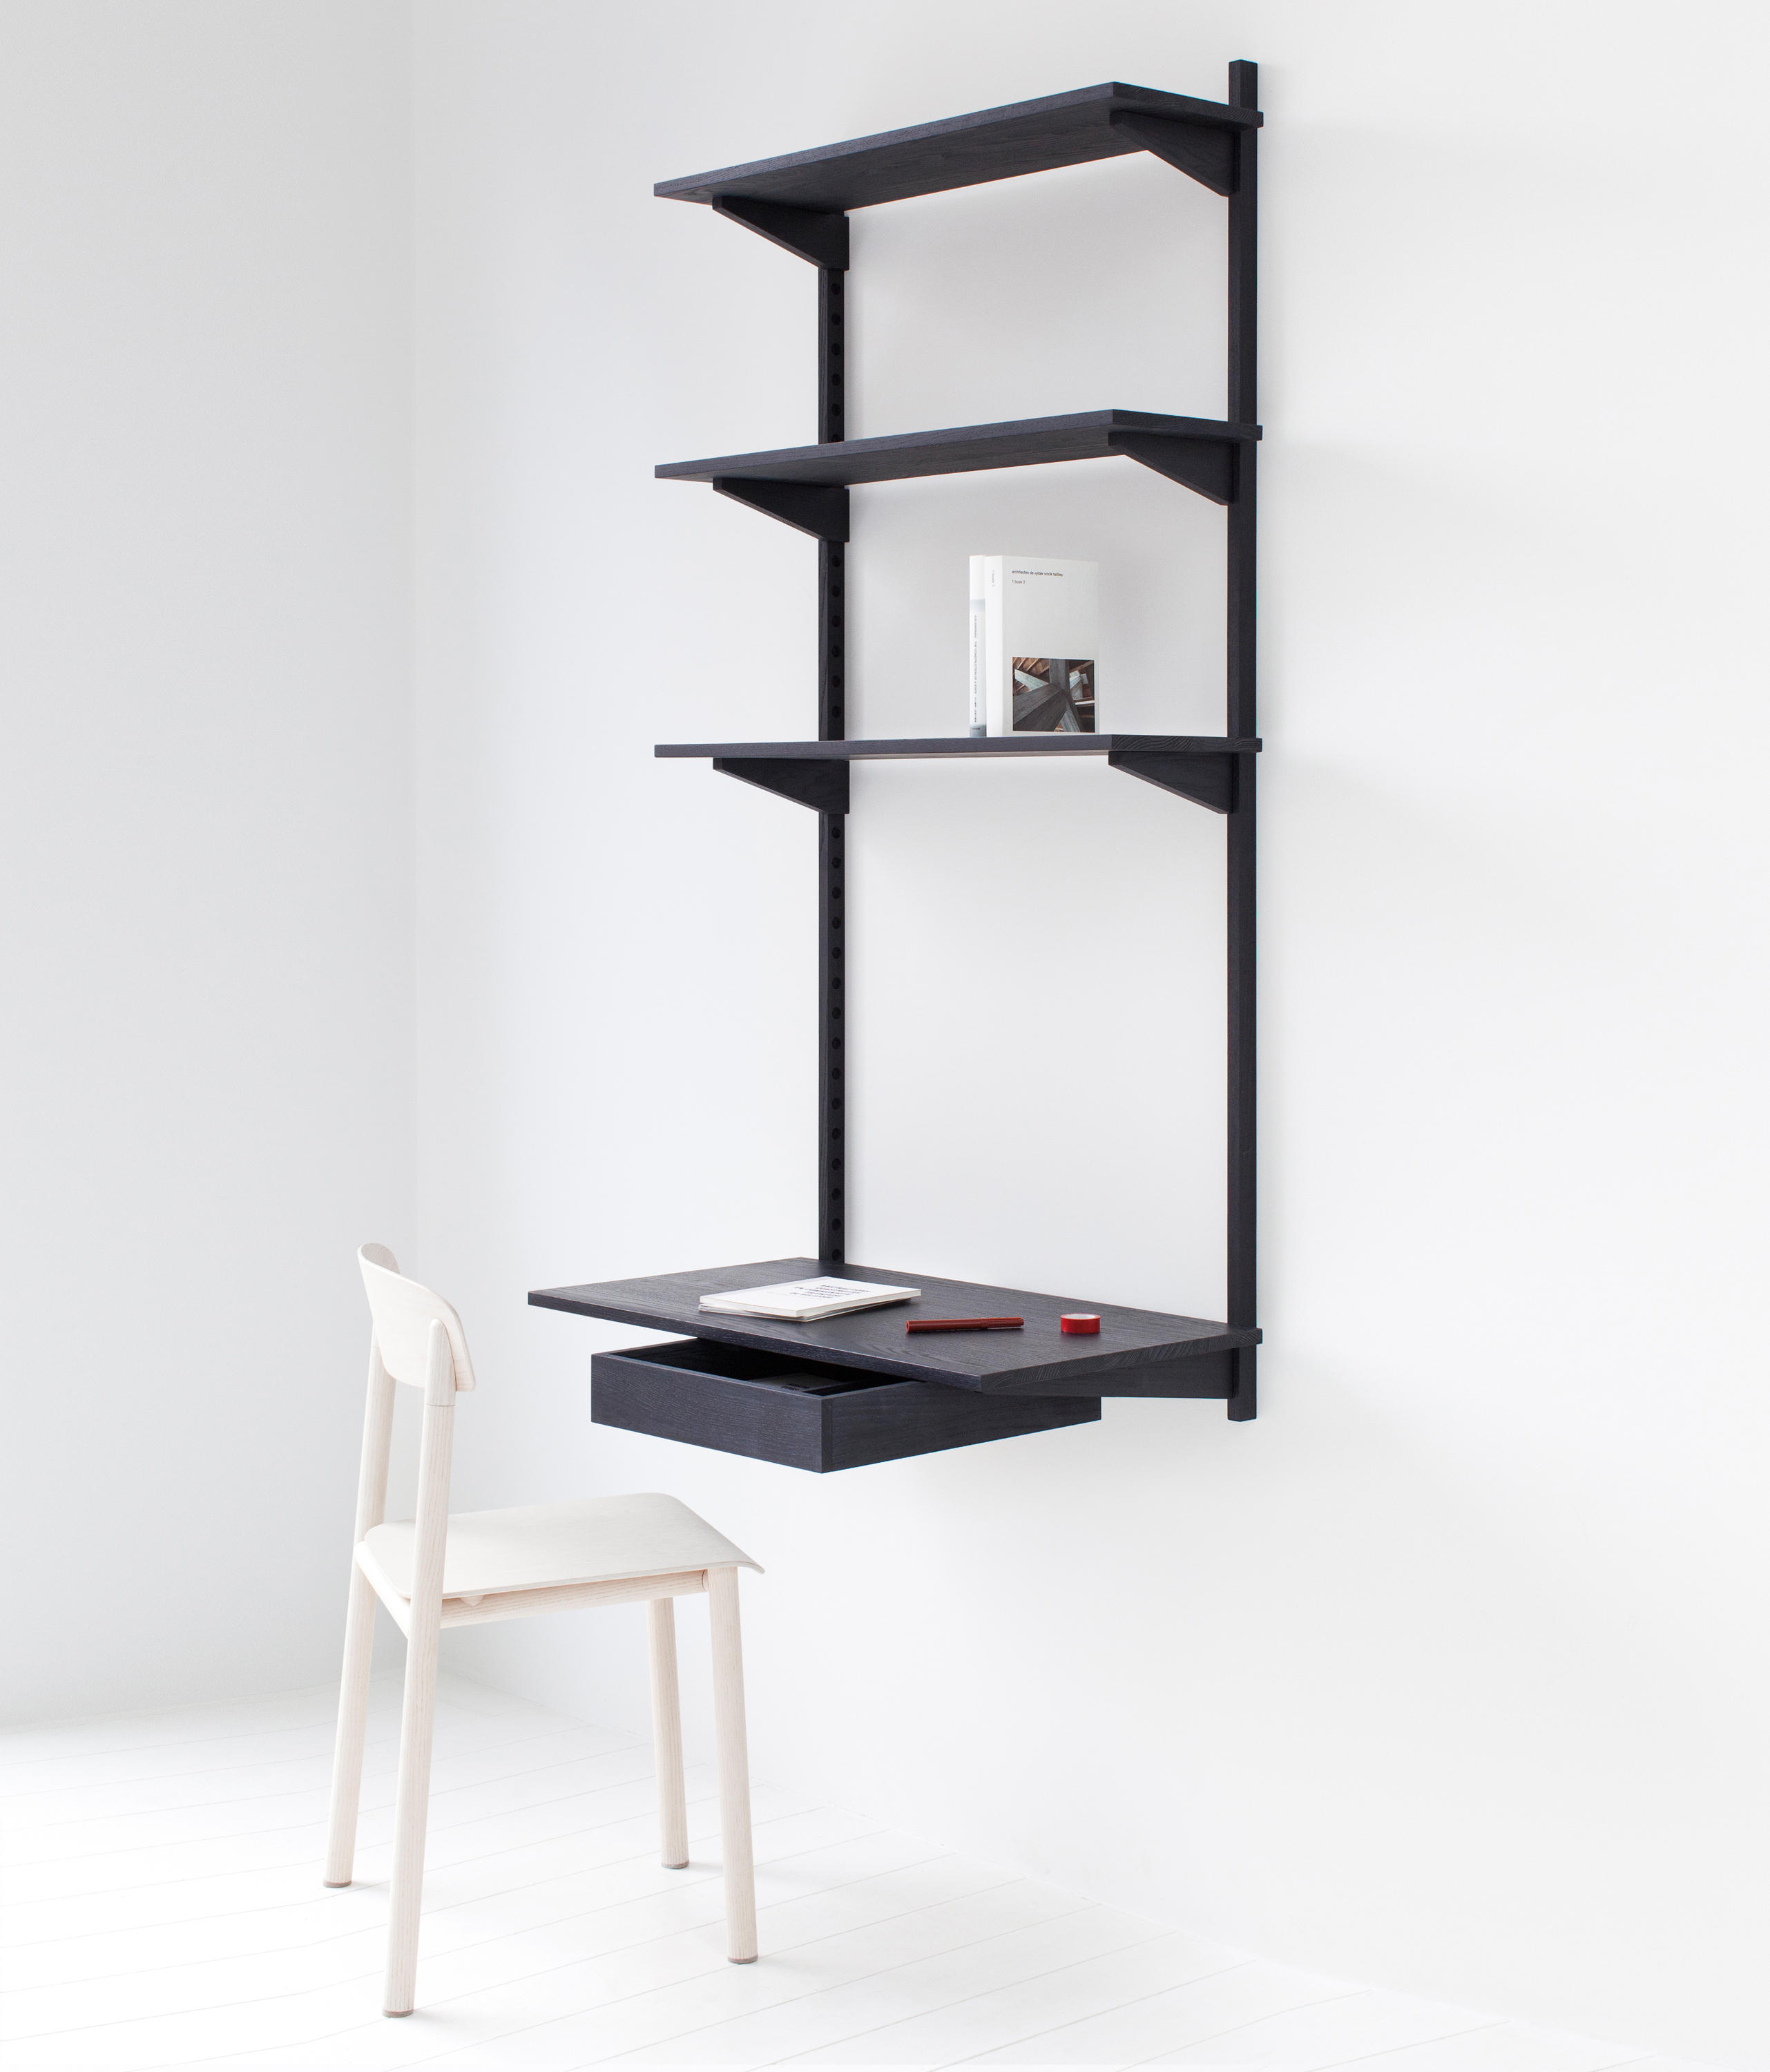 unit desk schreibtische von stattmann neue moebel architonic. Black Bedroom Furniture Sets. Home Design Ideas